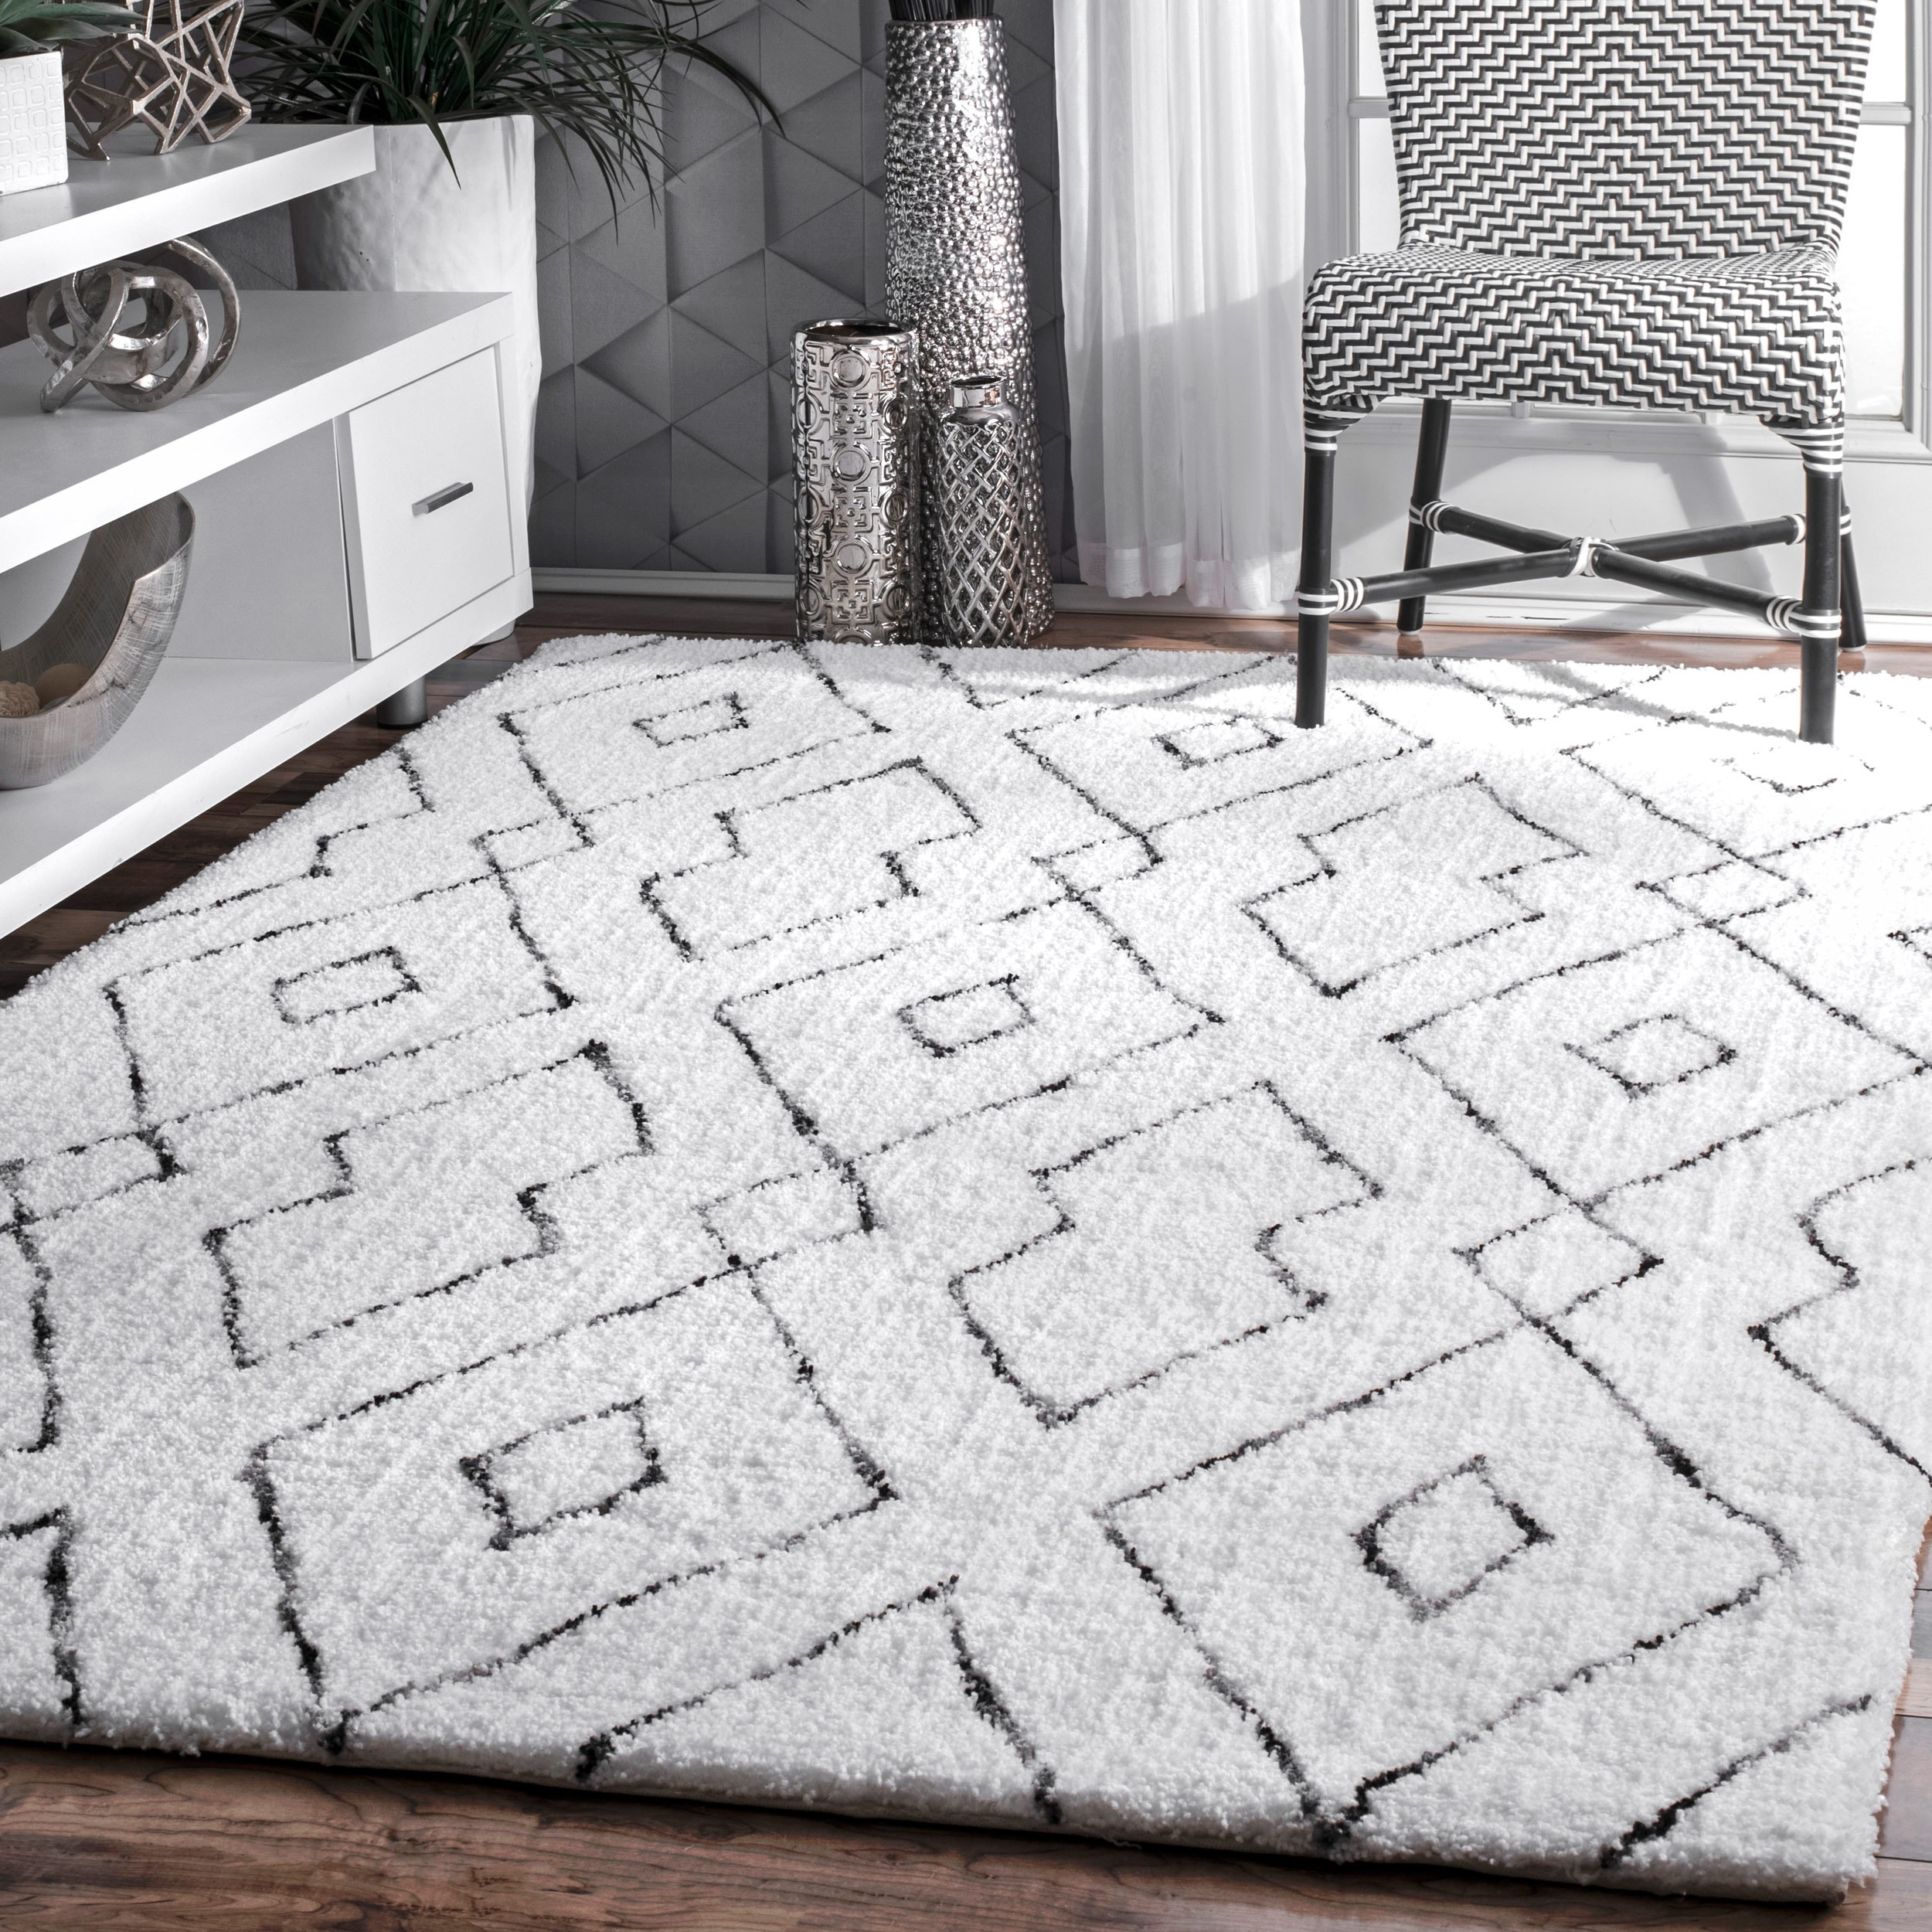 Nuloom White Handmade Soft And Plush Diamond Lattice Area Rug